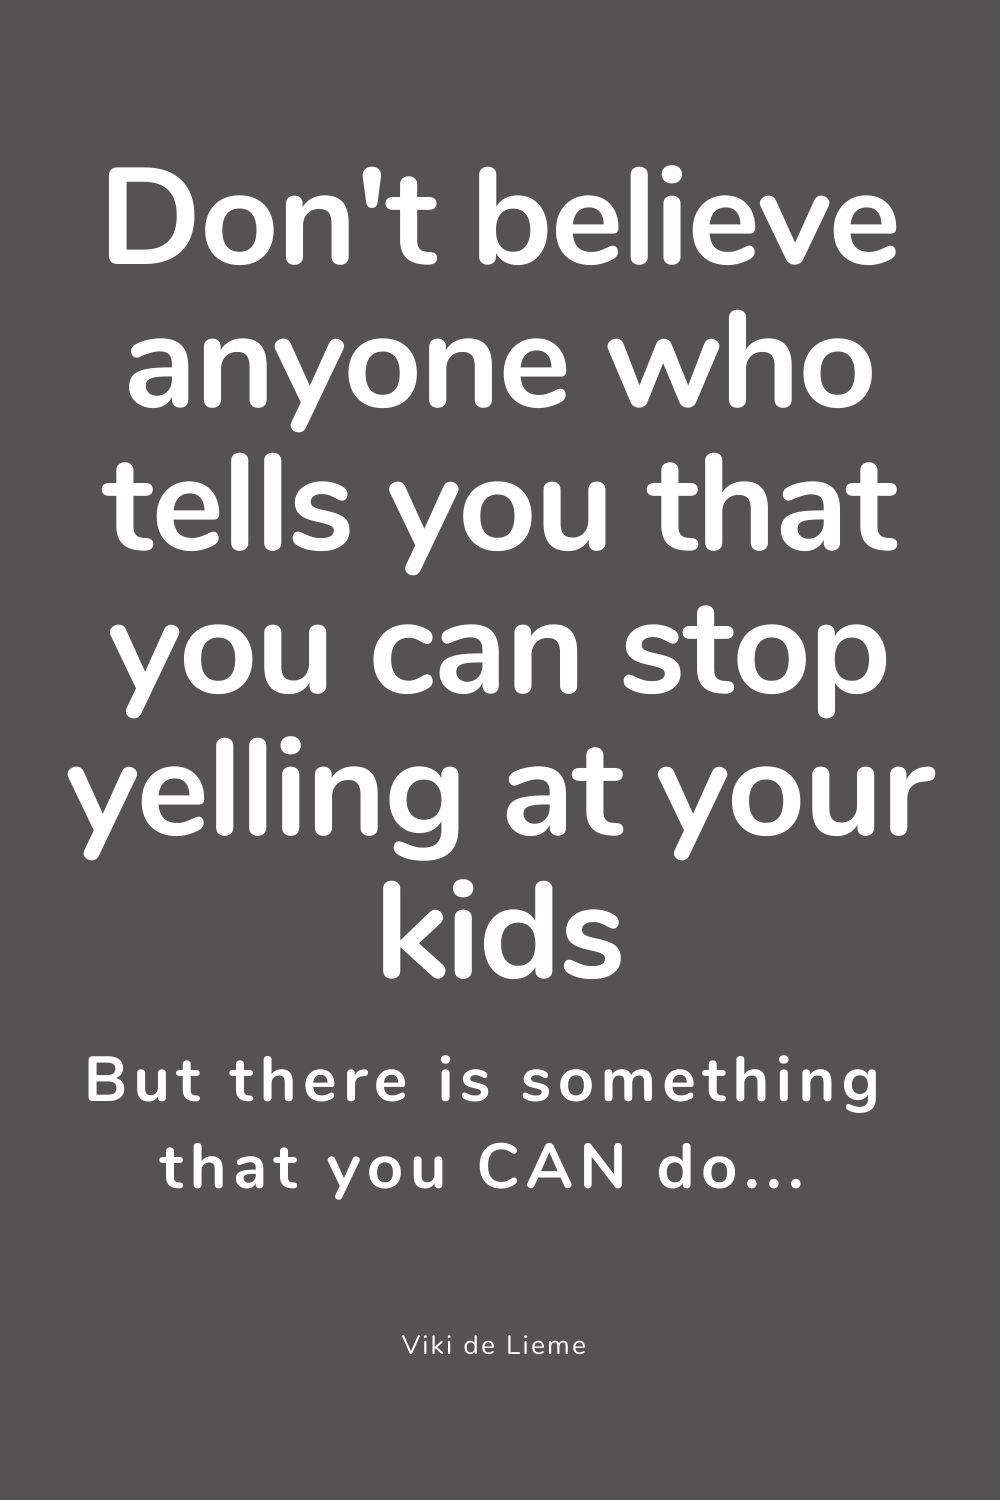 One of the things that upset me the most are posts and articles promising 10 easy steps to stop yelling at your kids. Here's the thing - there's no such thing. Parenting without yelling does not exist. There is, however, a way to yell mindfully. I swear. Yell authentically in a way that doesn't cause guilt and shame with the kids, and works to relieve you from your feelings. Here it is #mindfulparenting #positiveparenting #howtostopyellingatmykids #littlebodiesbigemotions #positiveparenting